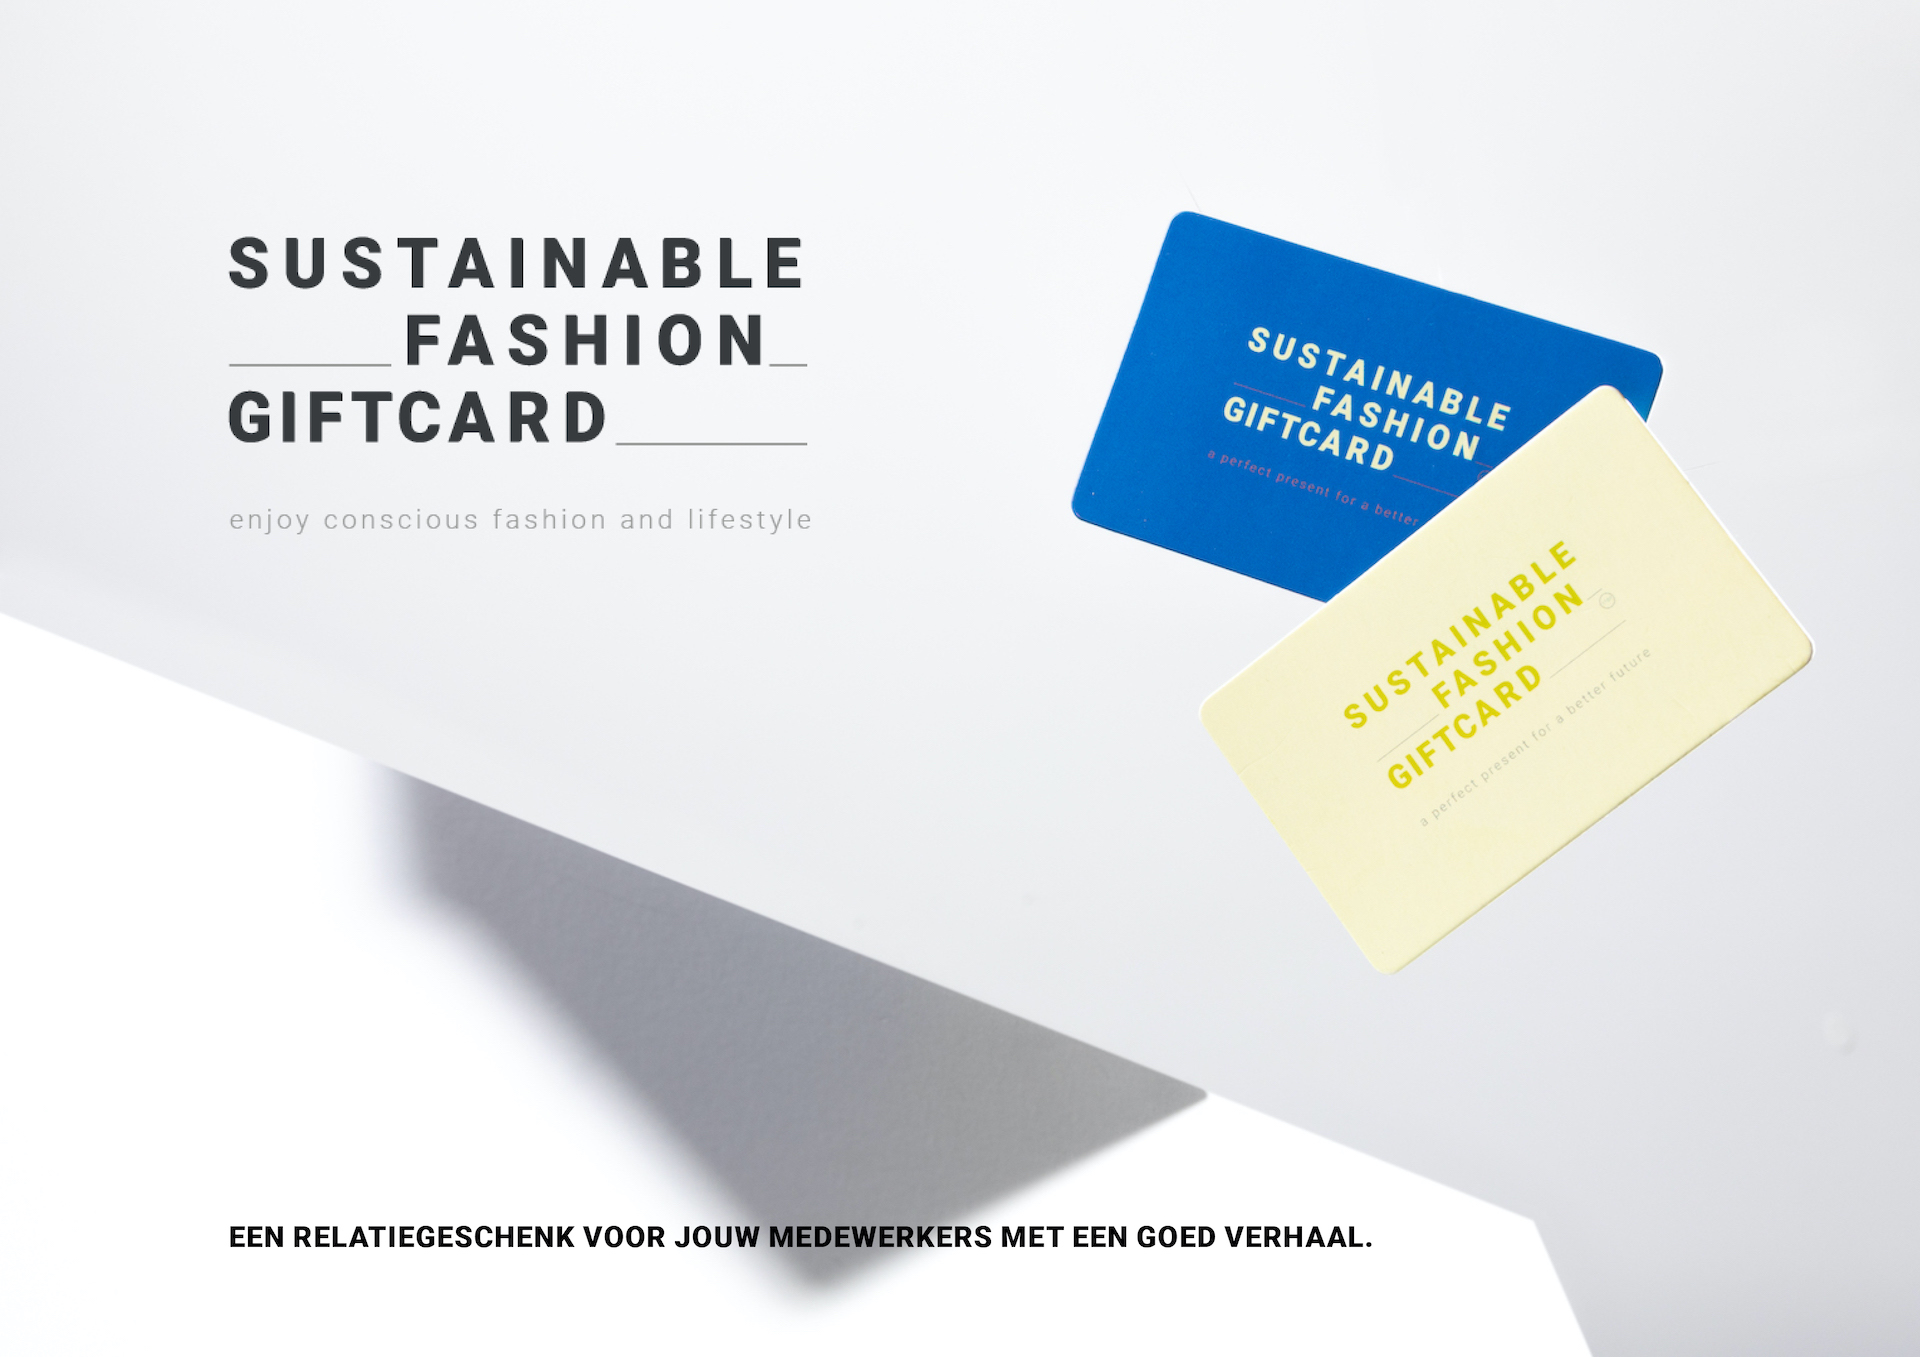 business-to-business-aanbod-sustainable-fashion-giftcard